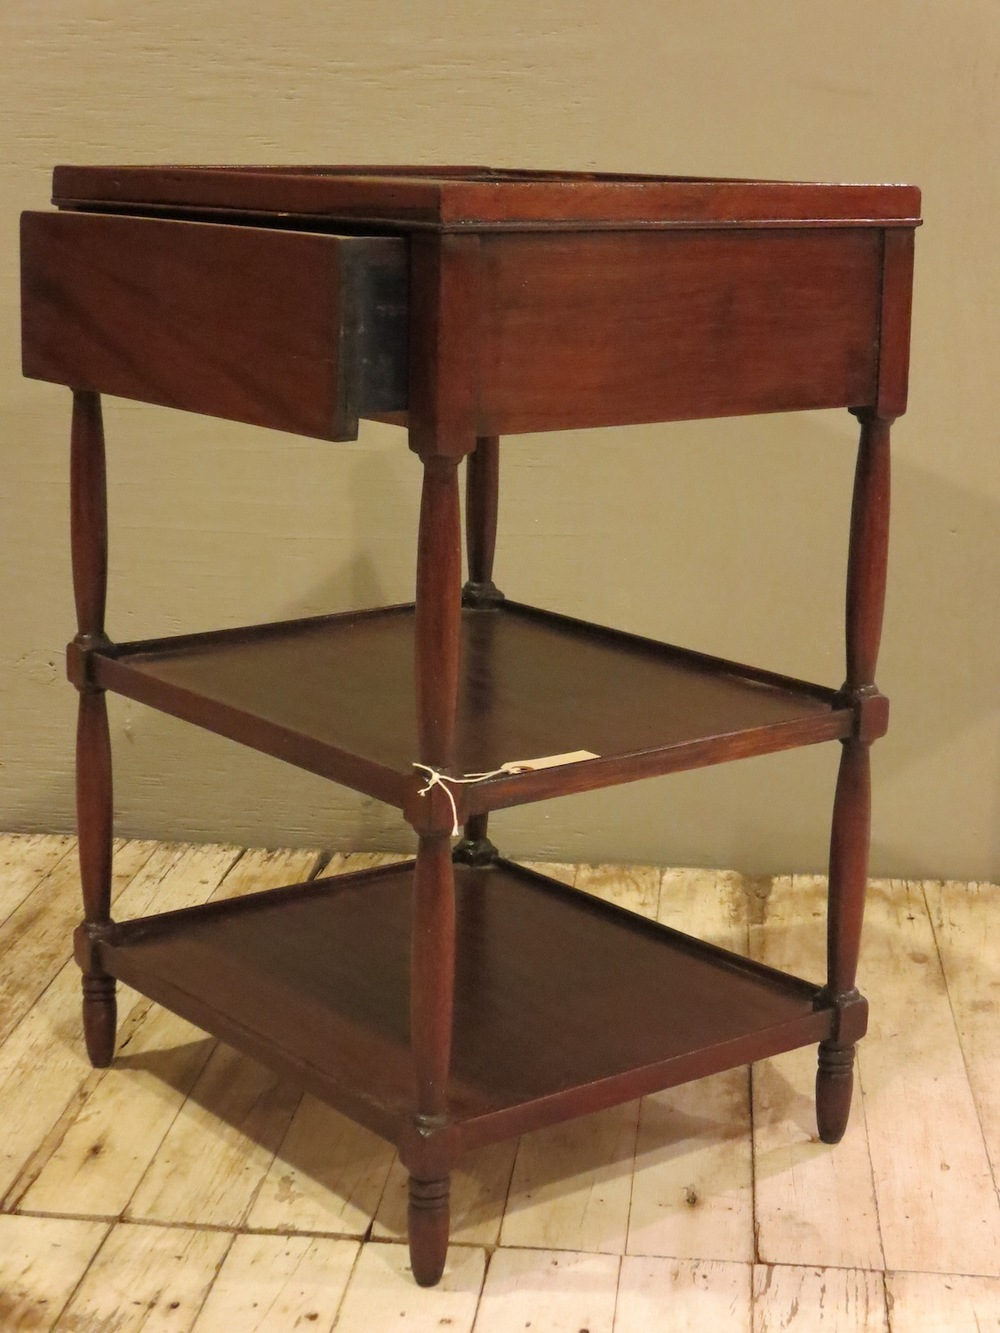 Small Table with 2 Tier and 1 Drawer